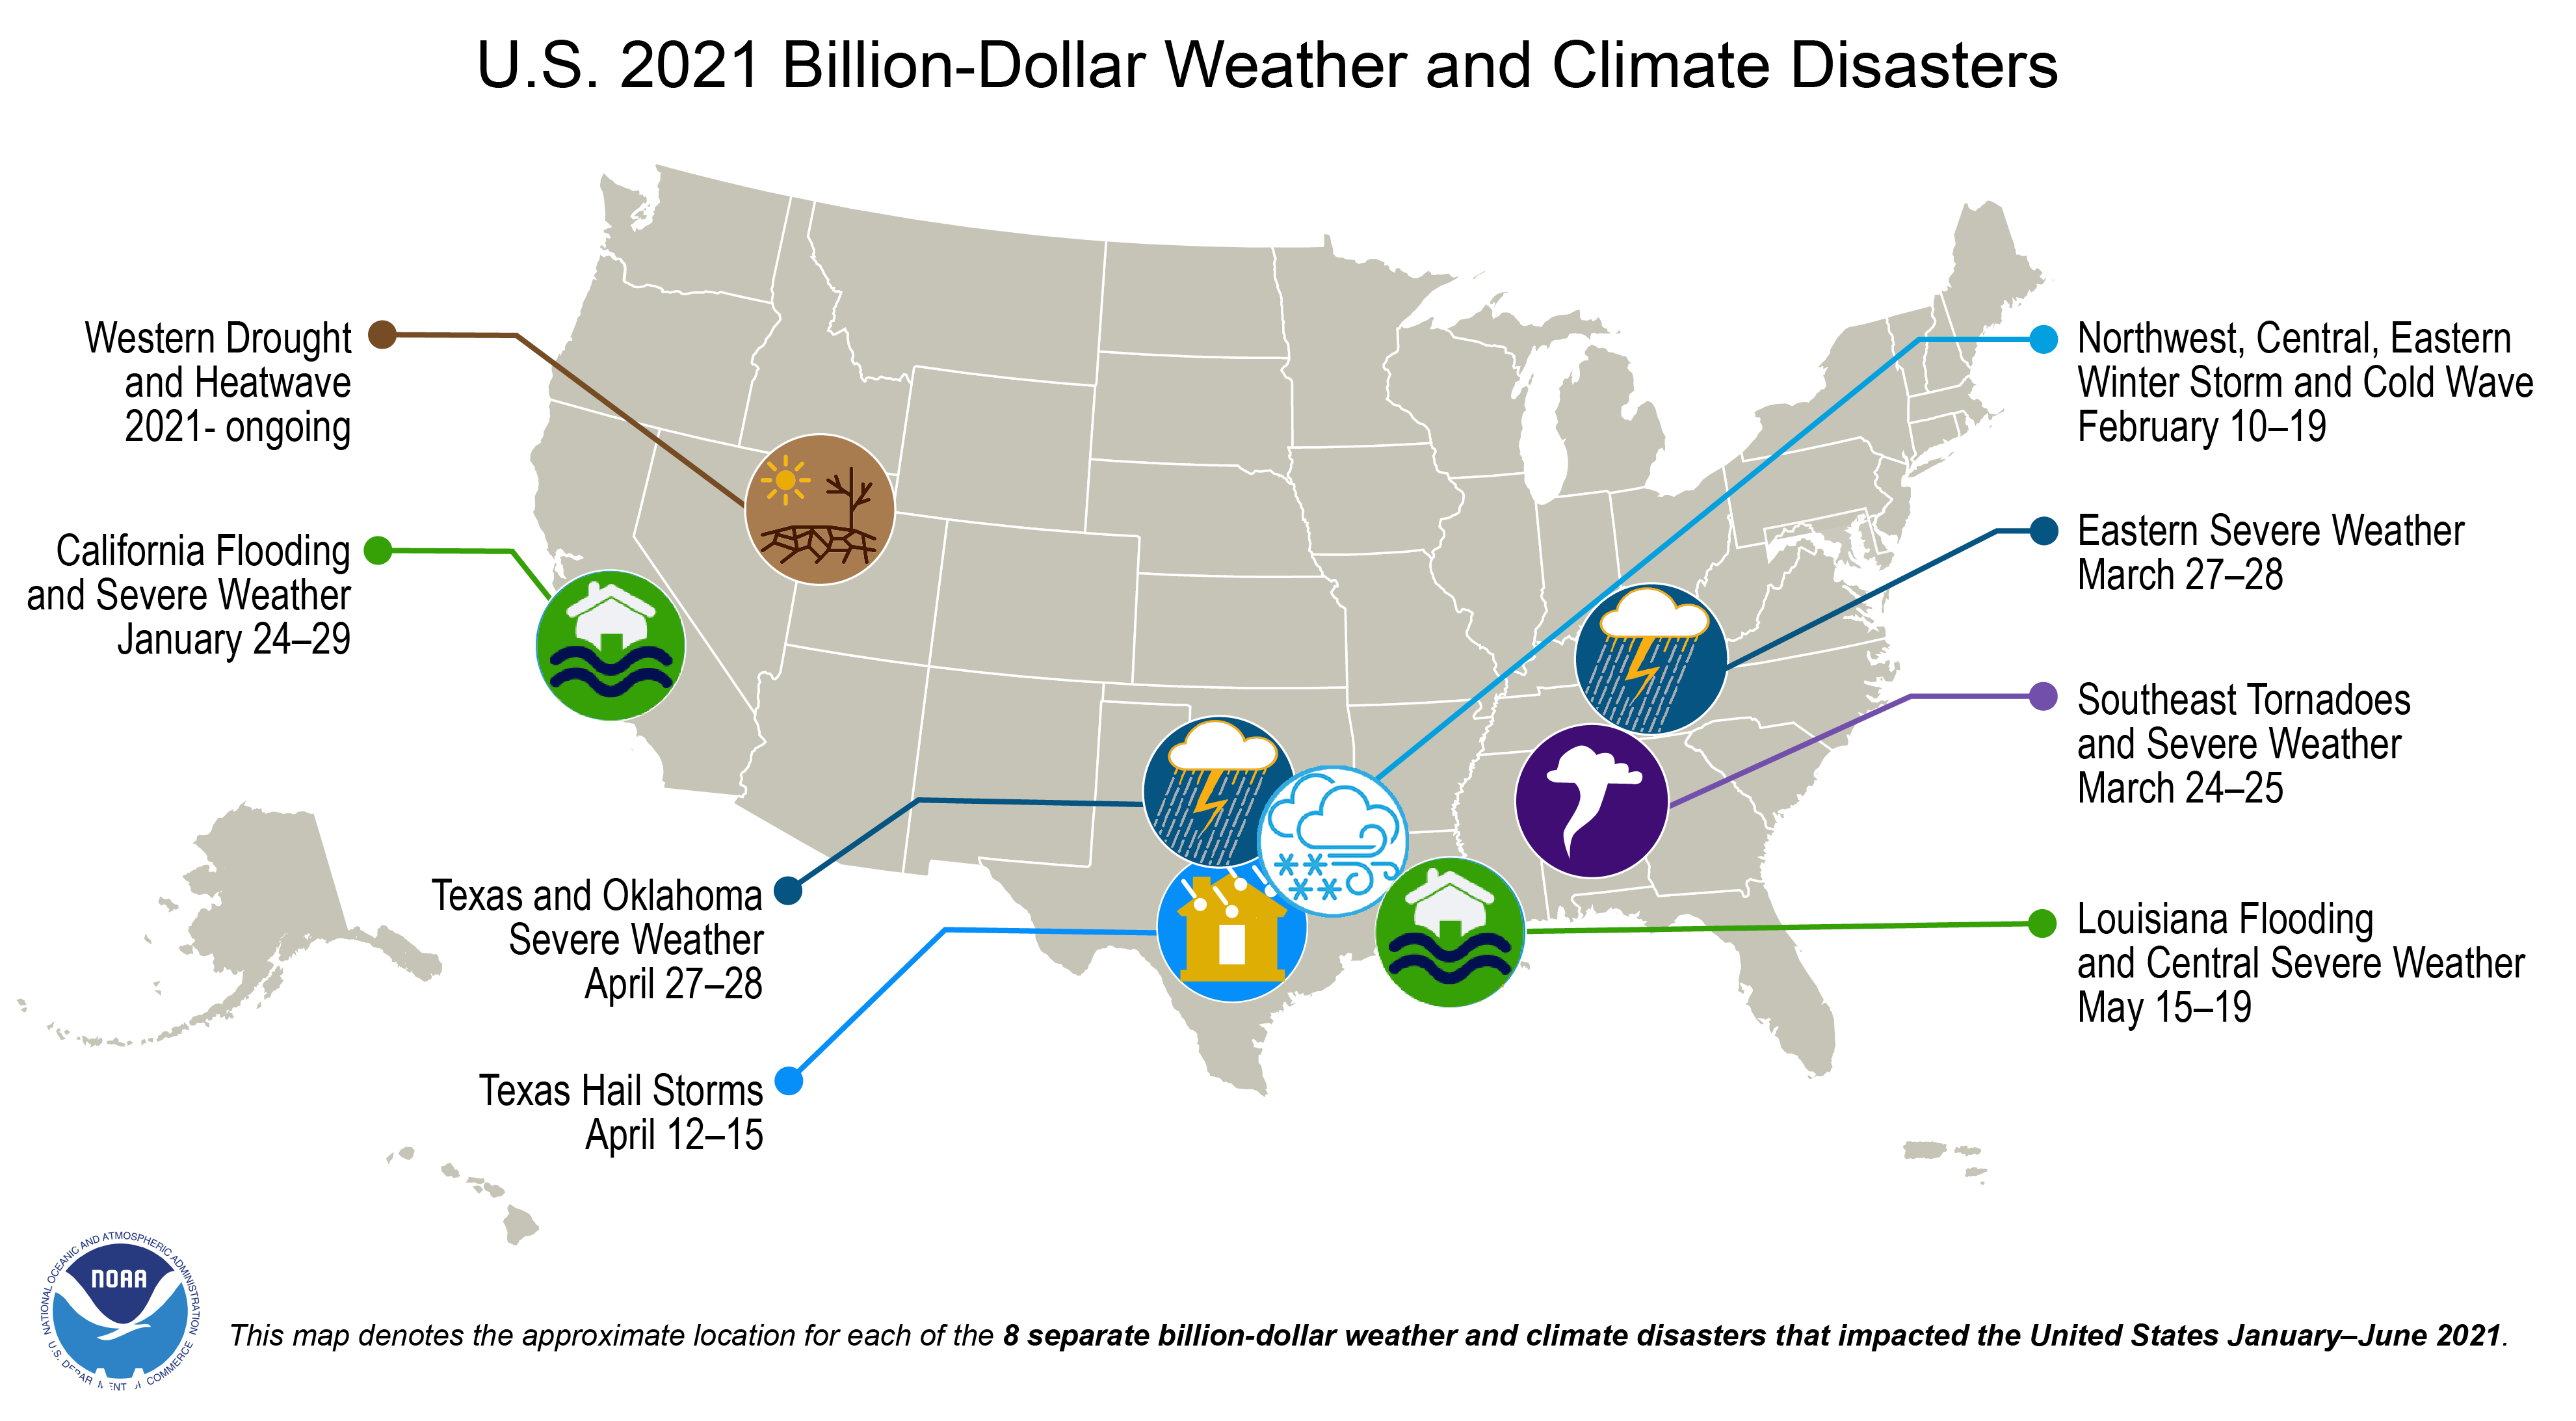 Eight Billion Dollar Disasters in the First Half of 2021